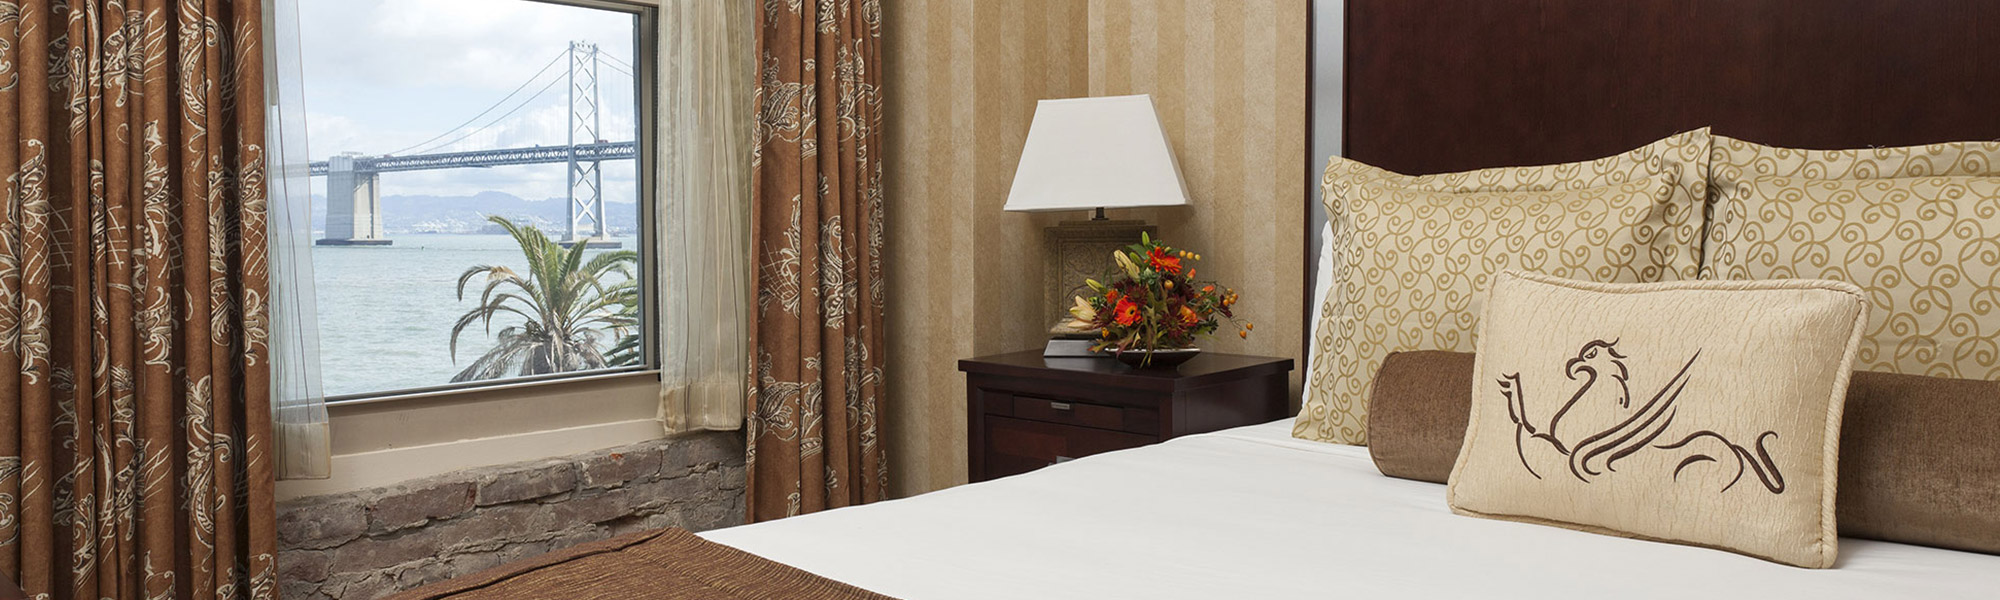 Packages availiable at Hotel Griffon - A Greystone Hotel, San Francisco